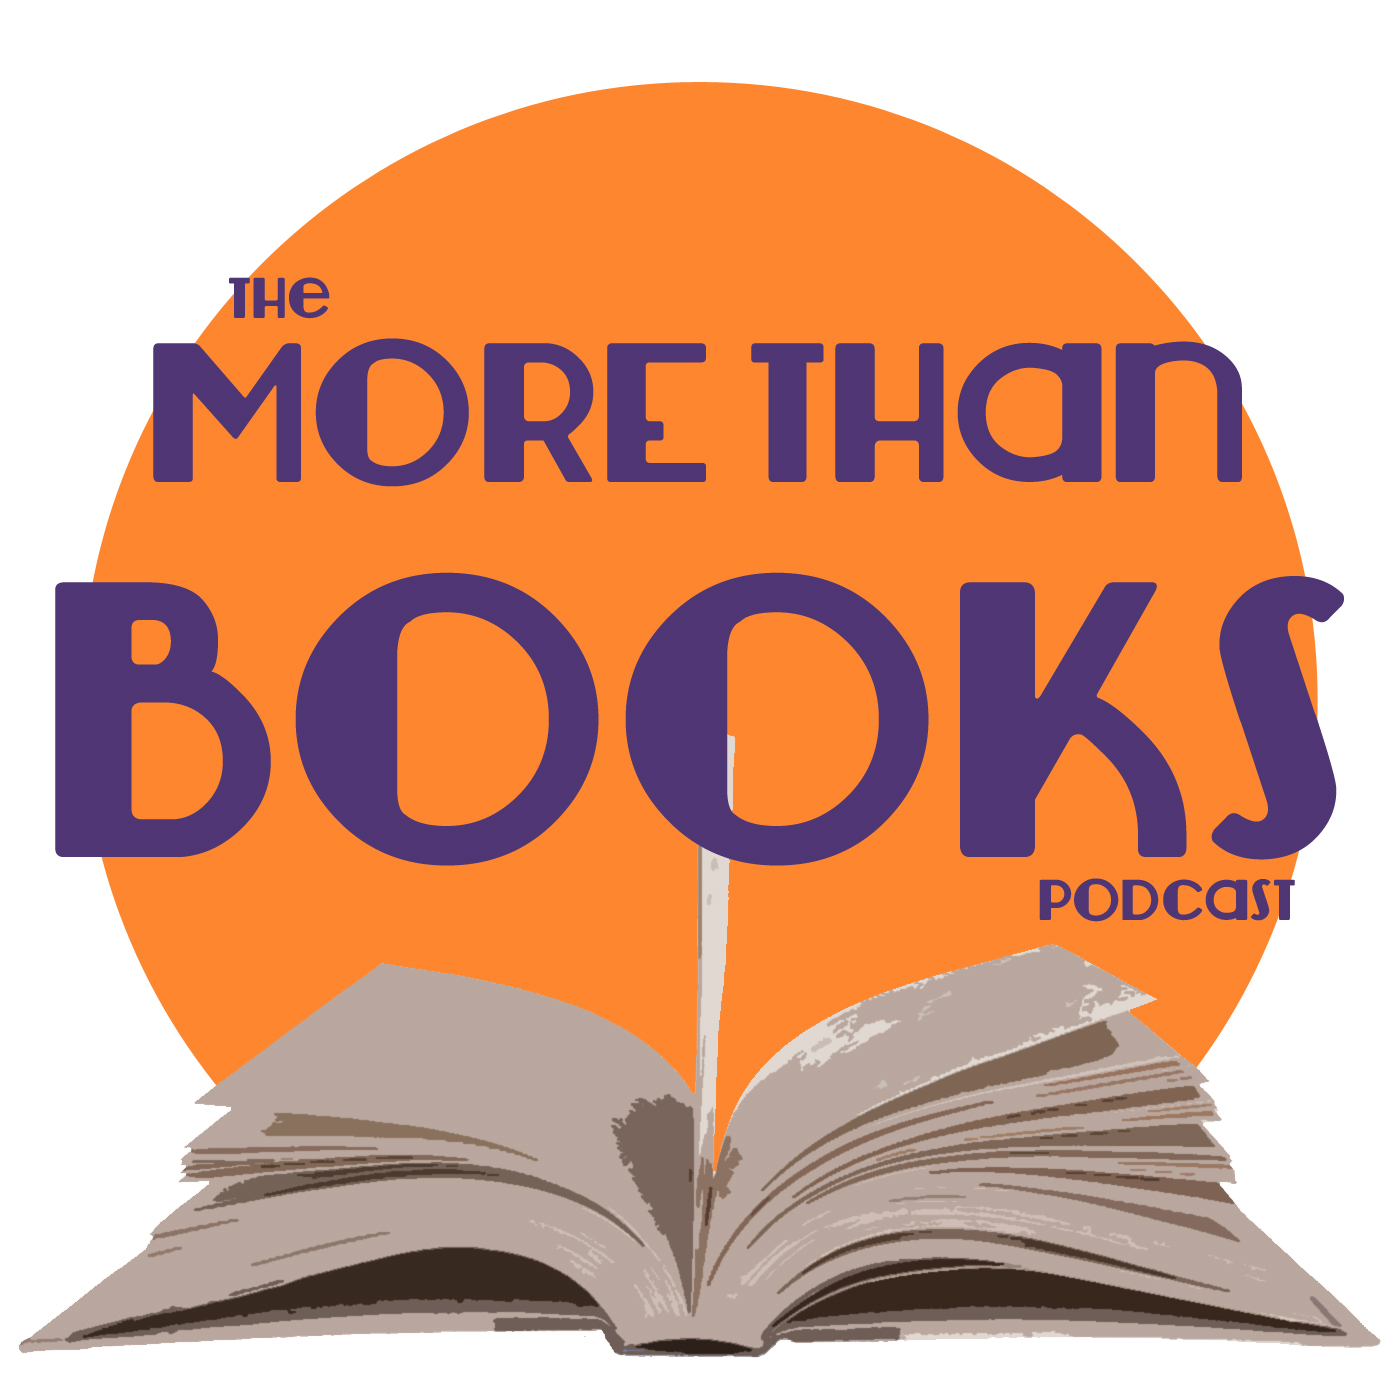 The More Than Books Podcast